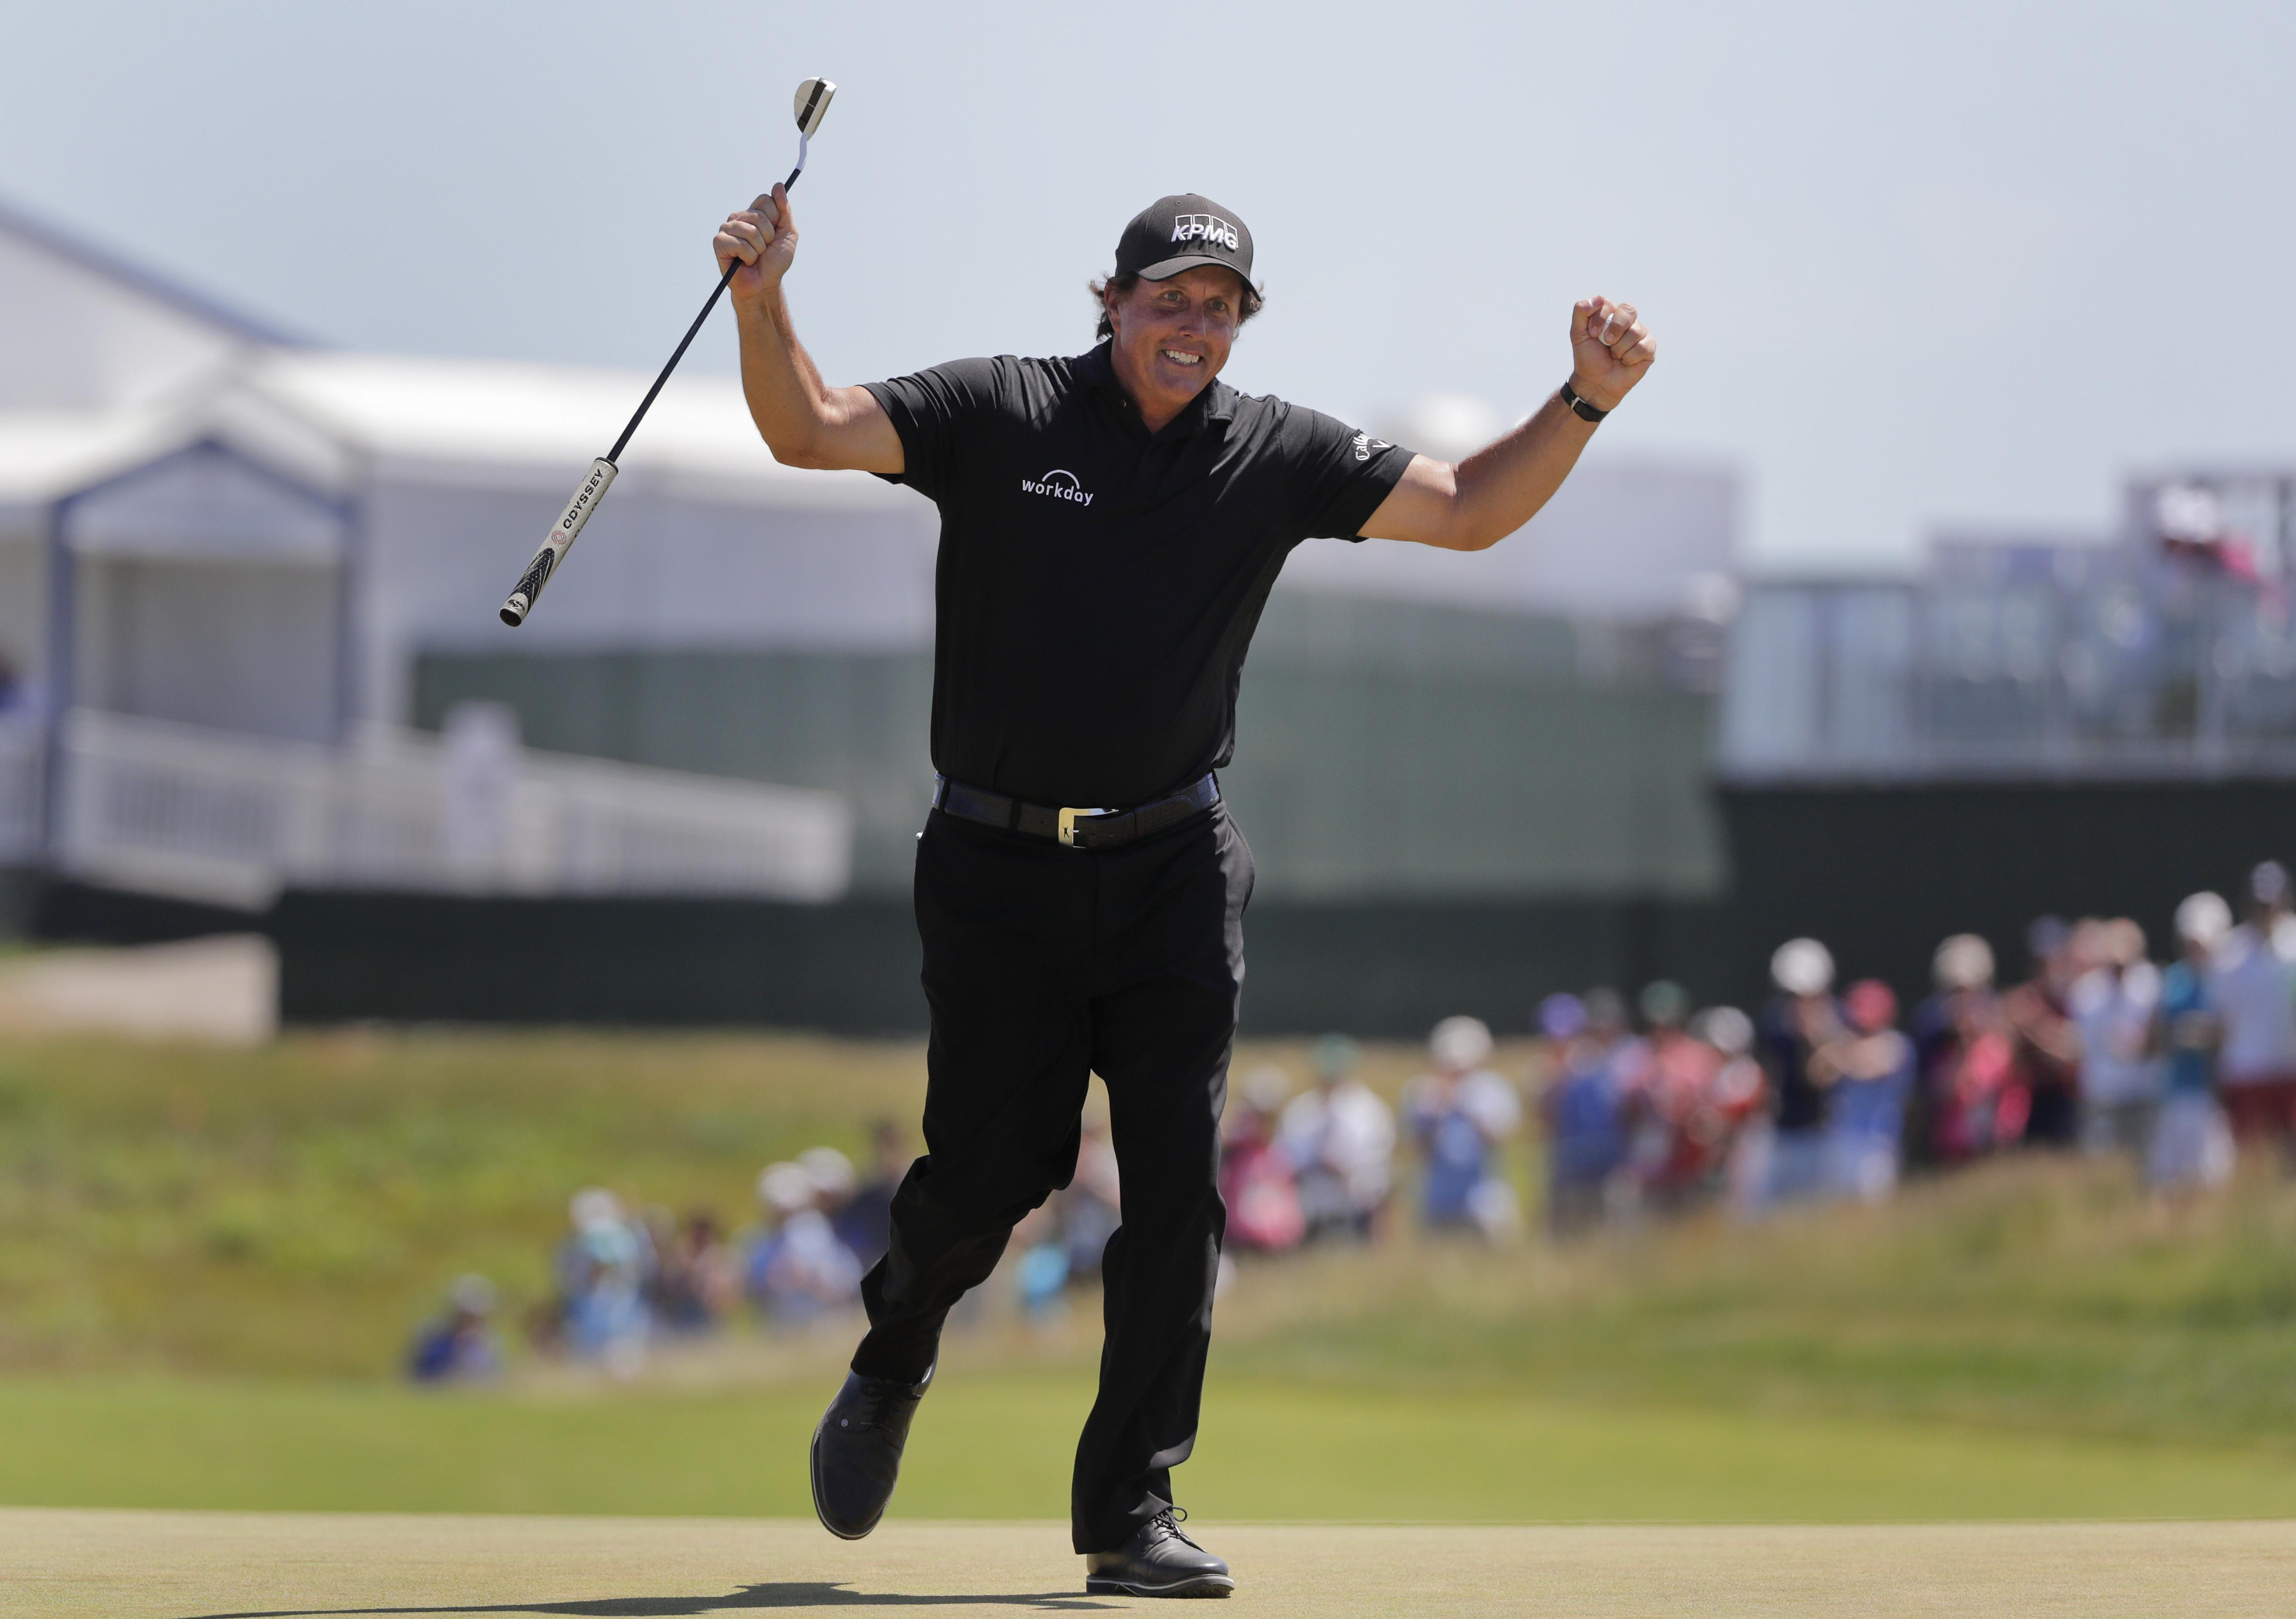 Mickelson then had the cheek to celebrate his par on the same hole the following day